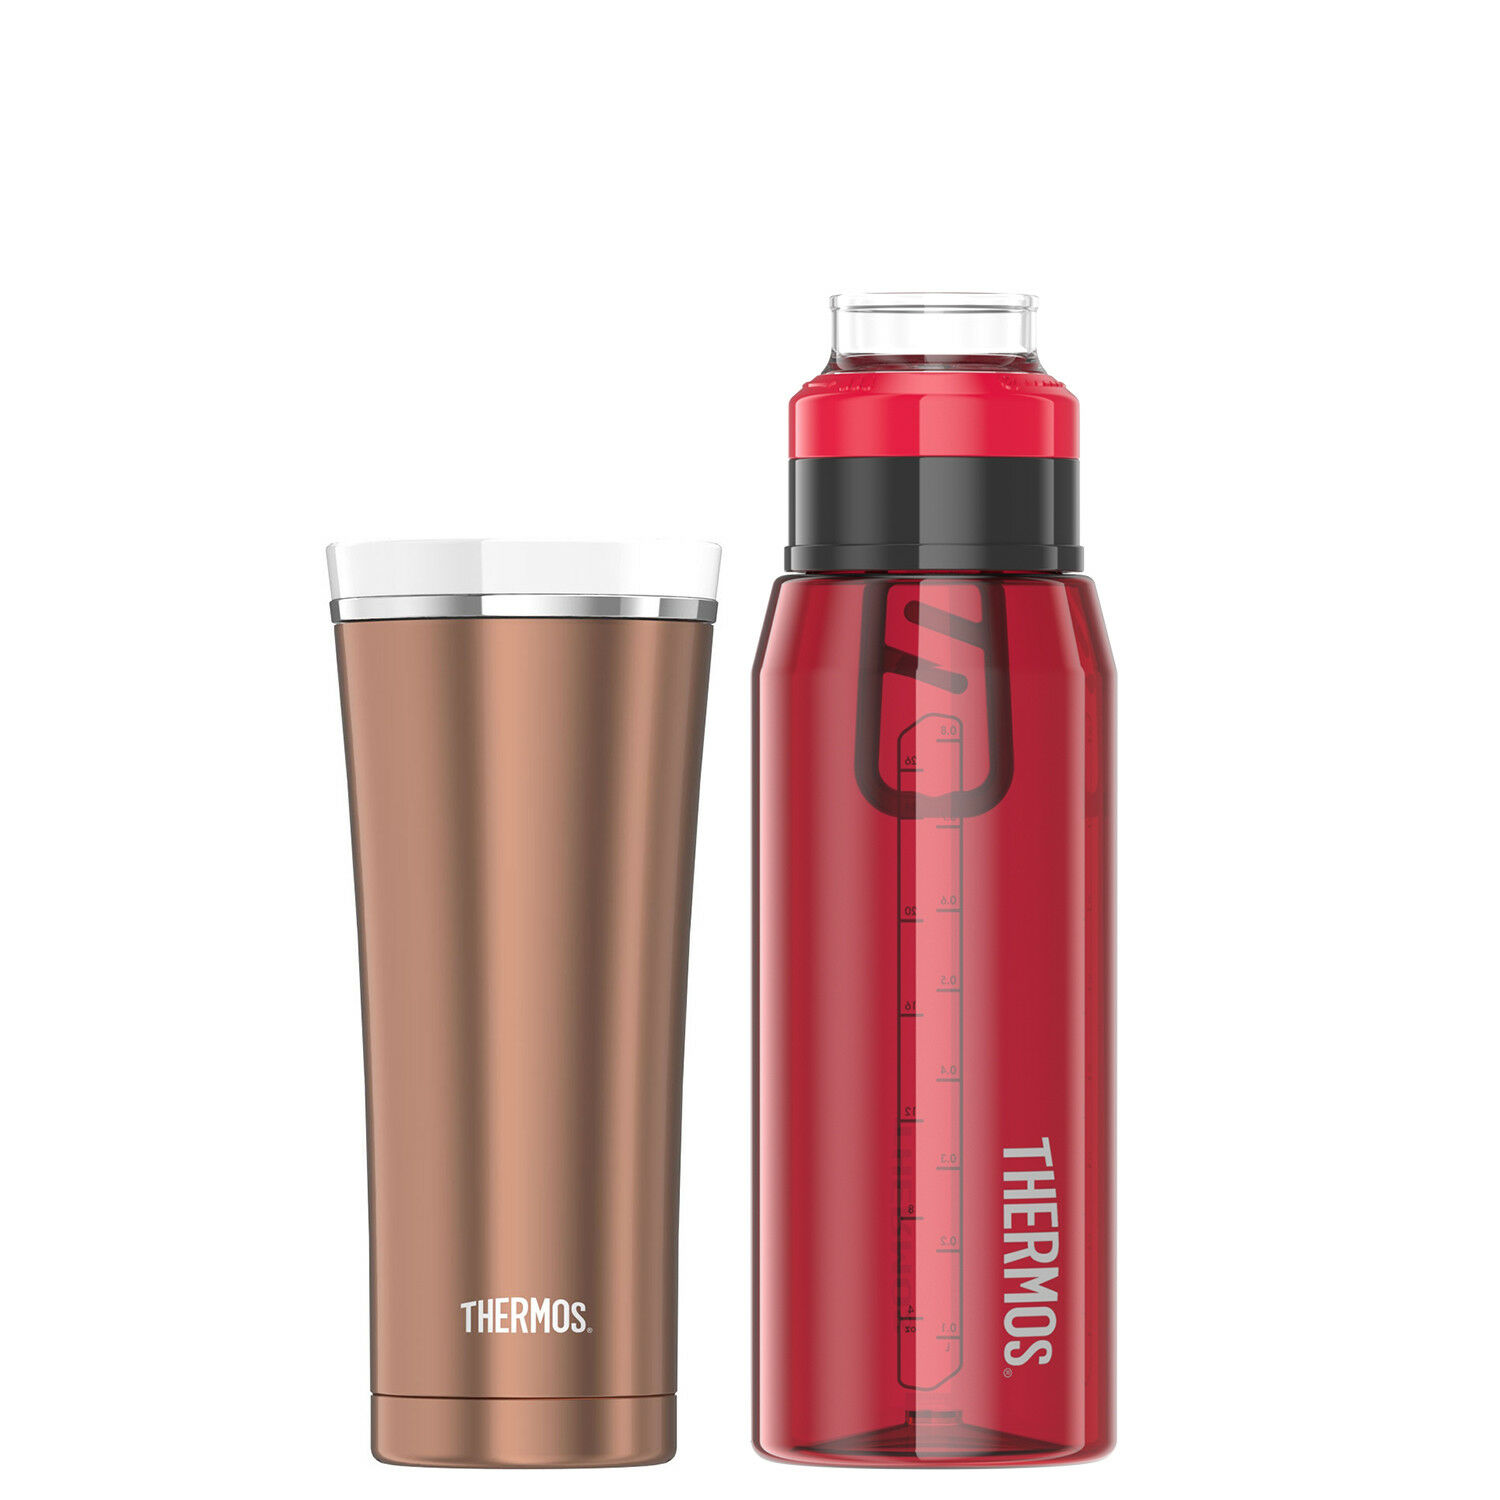 Sipp by Thermos 16oz Stainless Steel Travel Tumbler and 32oz Hydration Bottle